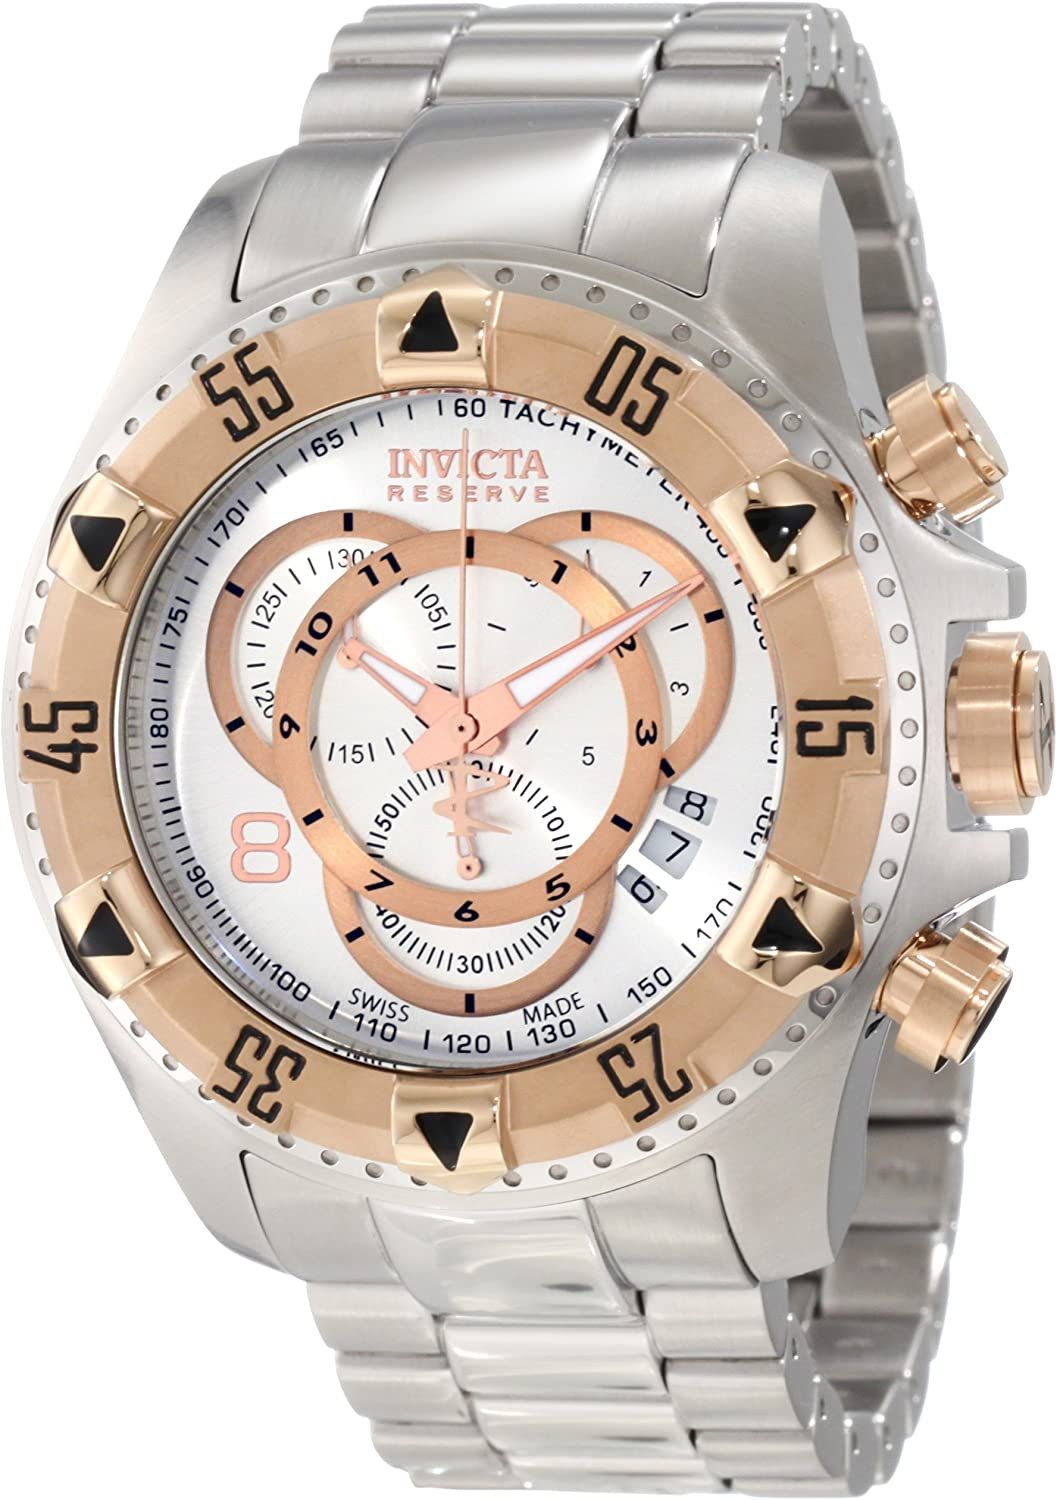 Invicta Men s 1880 Excursion S1 Chronograph Silver Dial Stainless Steel Watch